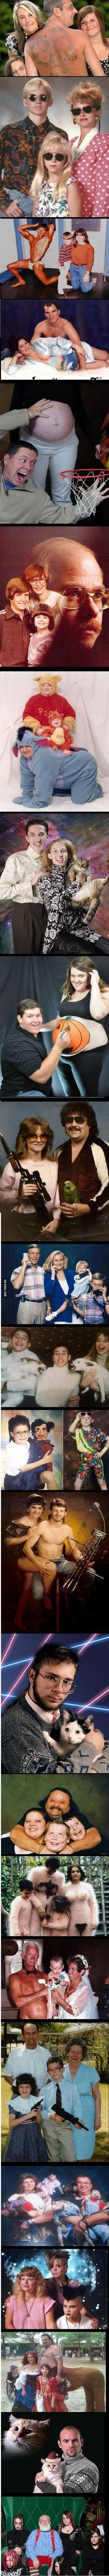 Just some awkward family photos/ these are so weird. Are people for real?!